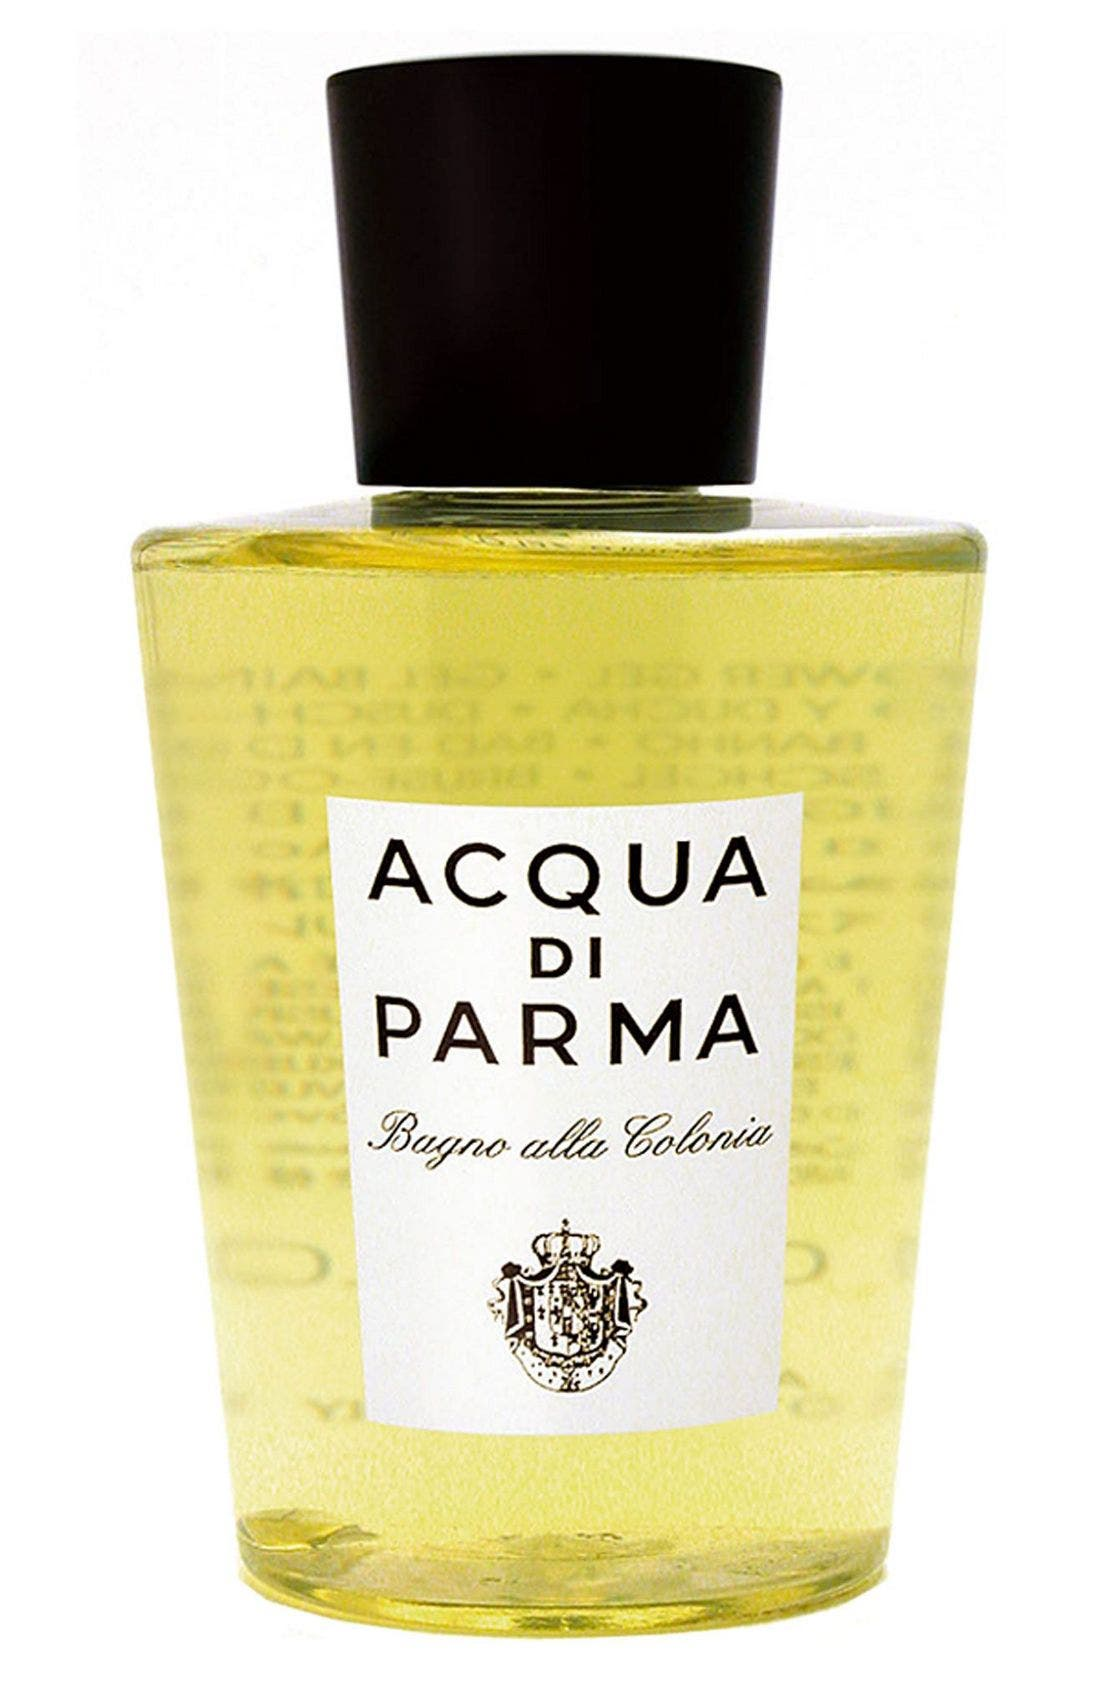 Acqua di Parma 'Colonia' Bath & Shower Gel